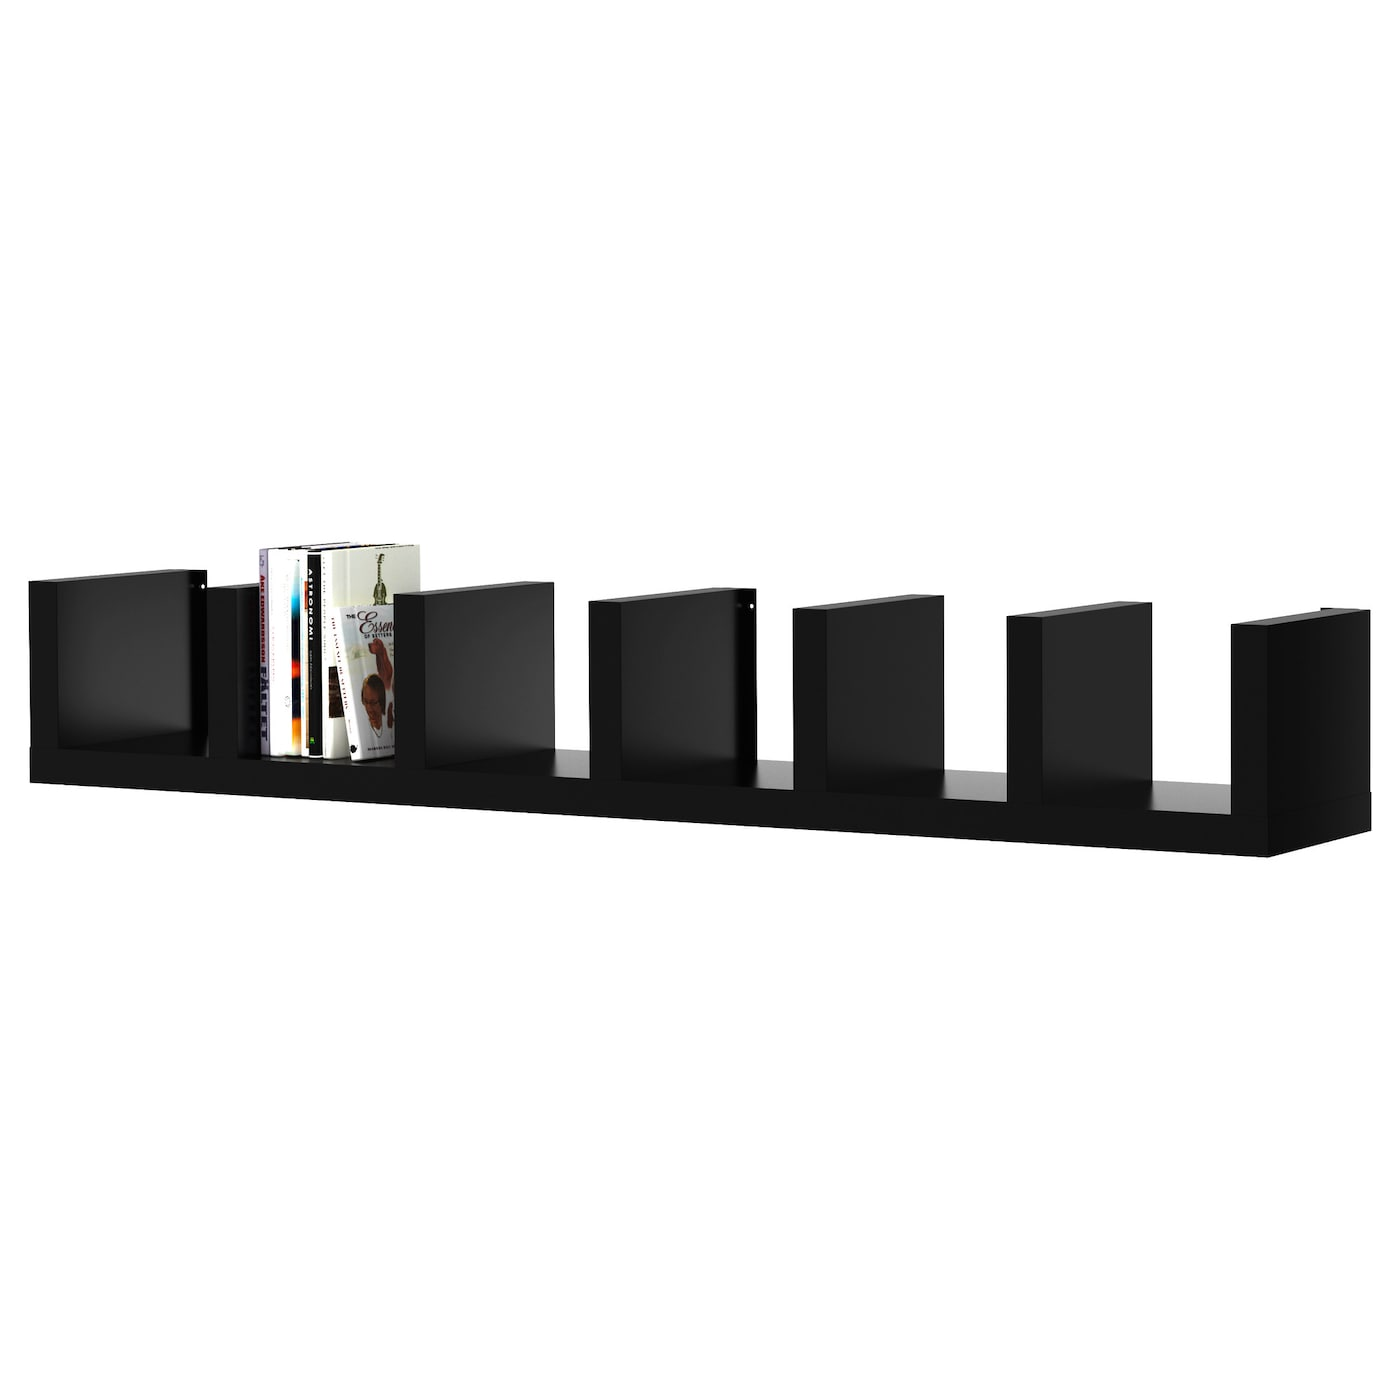 Lack wall shelf unit black 30x190 cm ikea for Mensole ikea lack